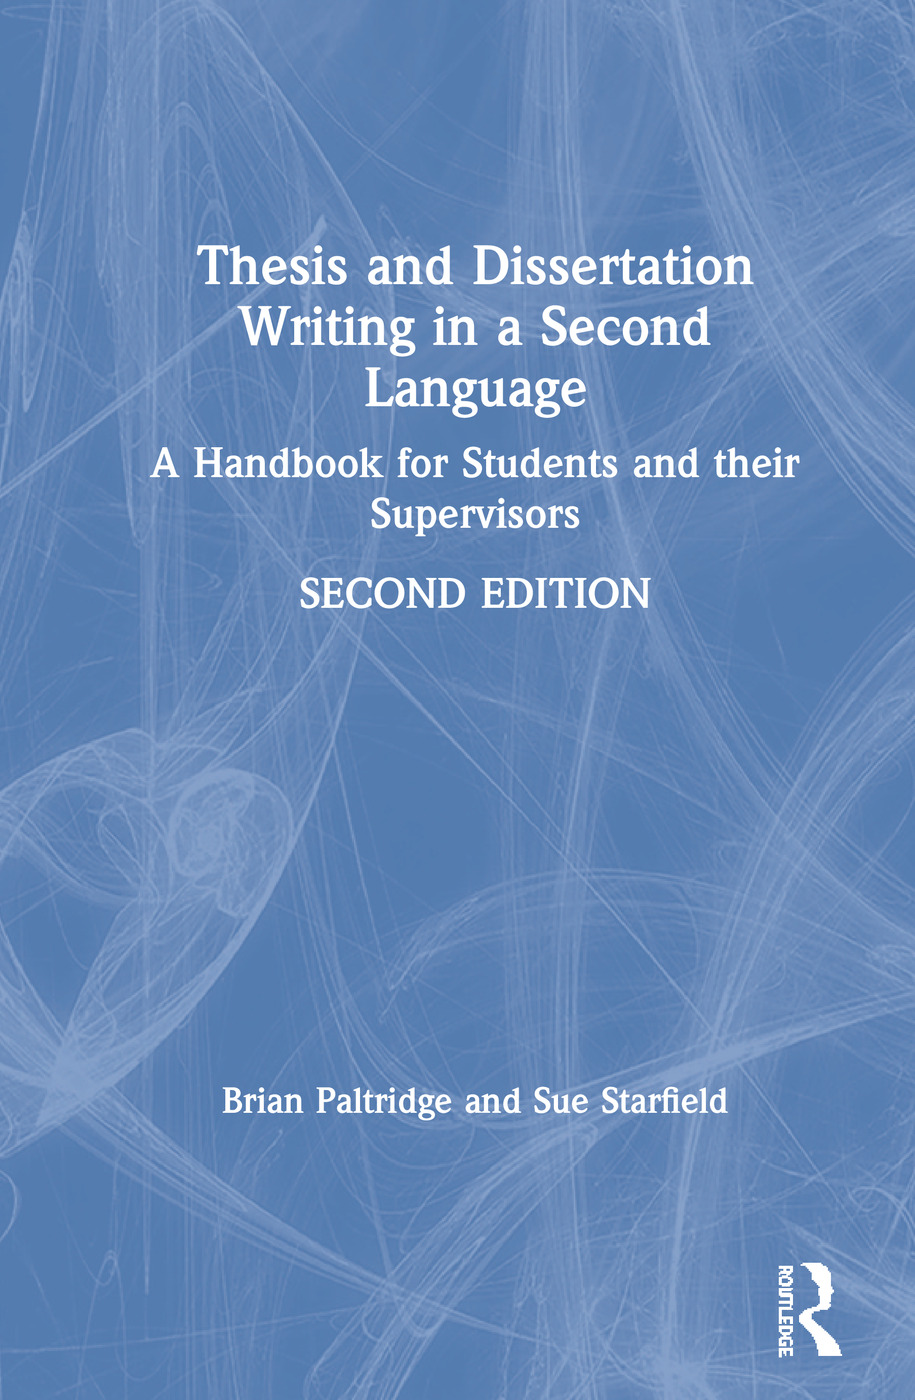 The overall shape of theses and dissertations